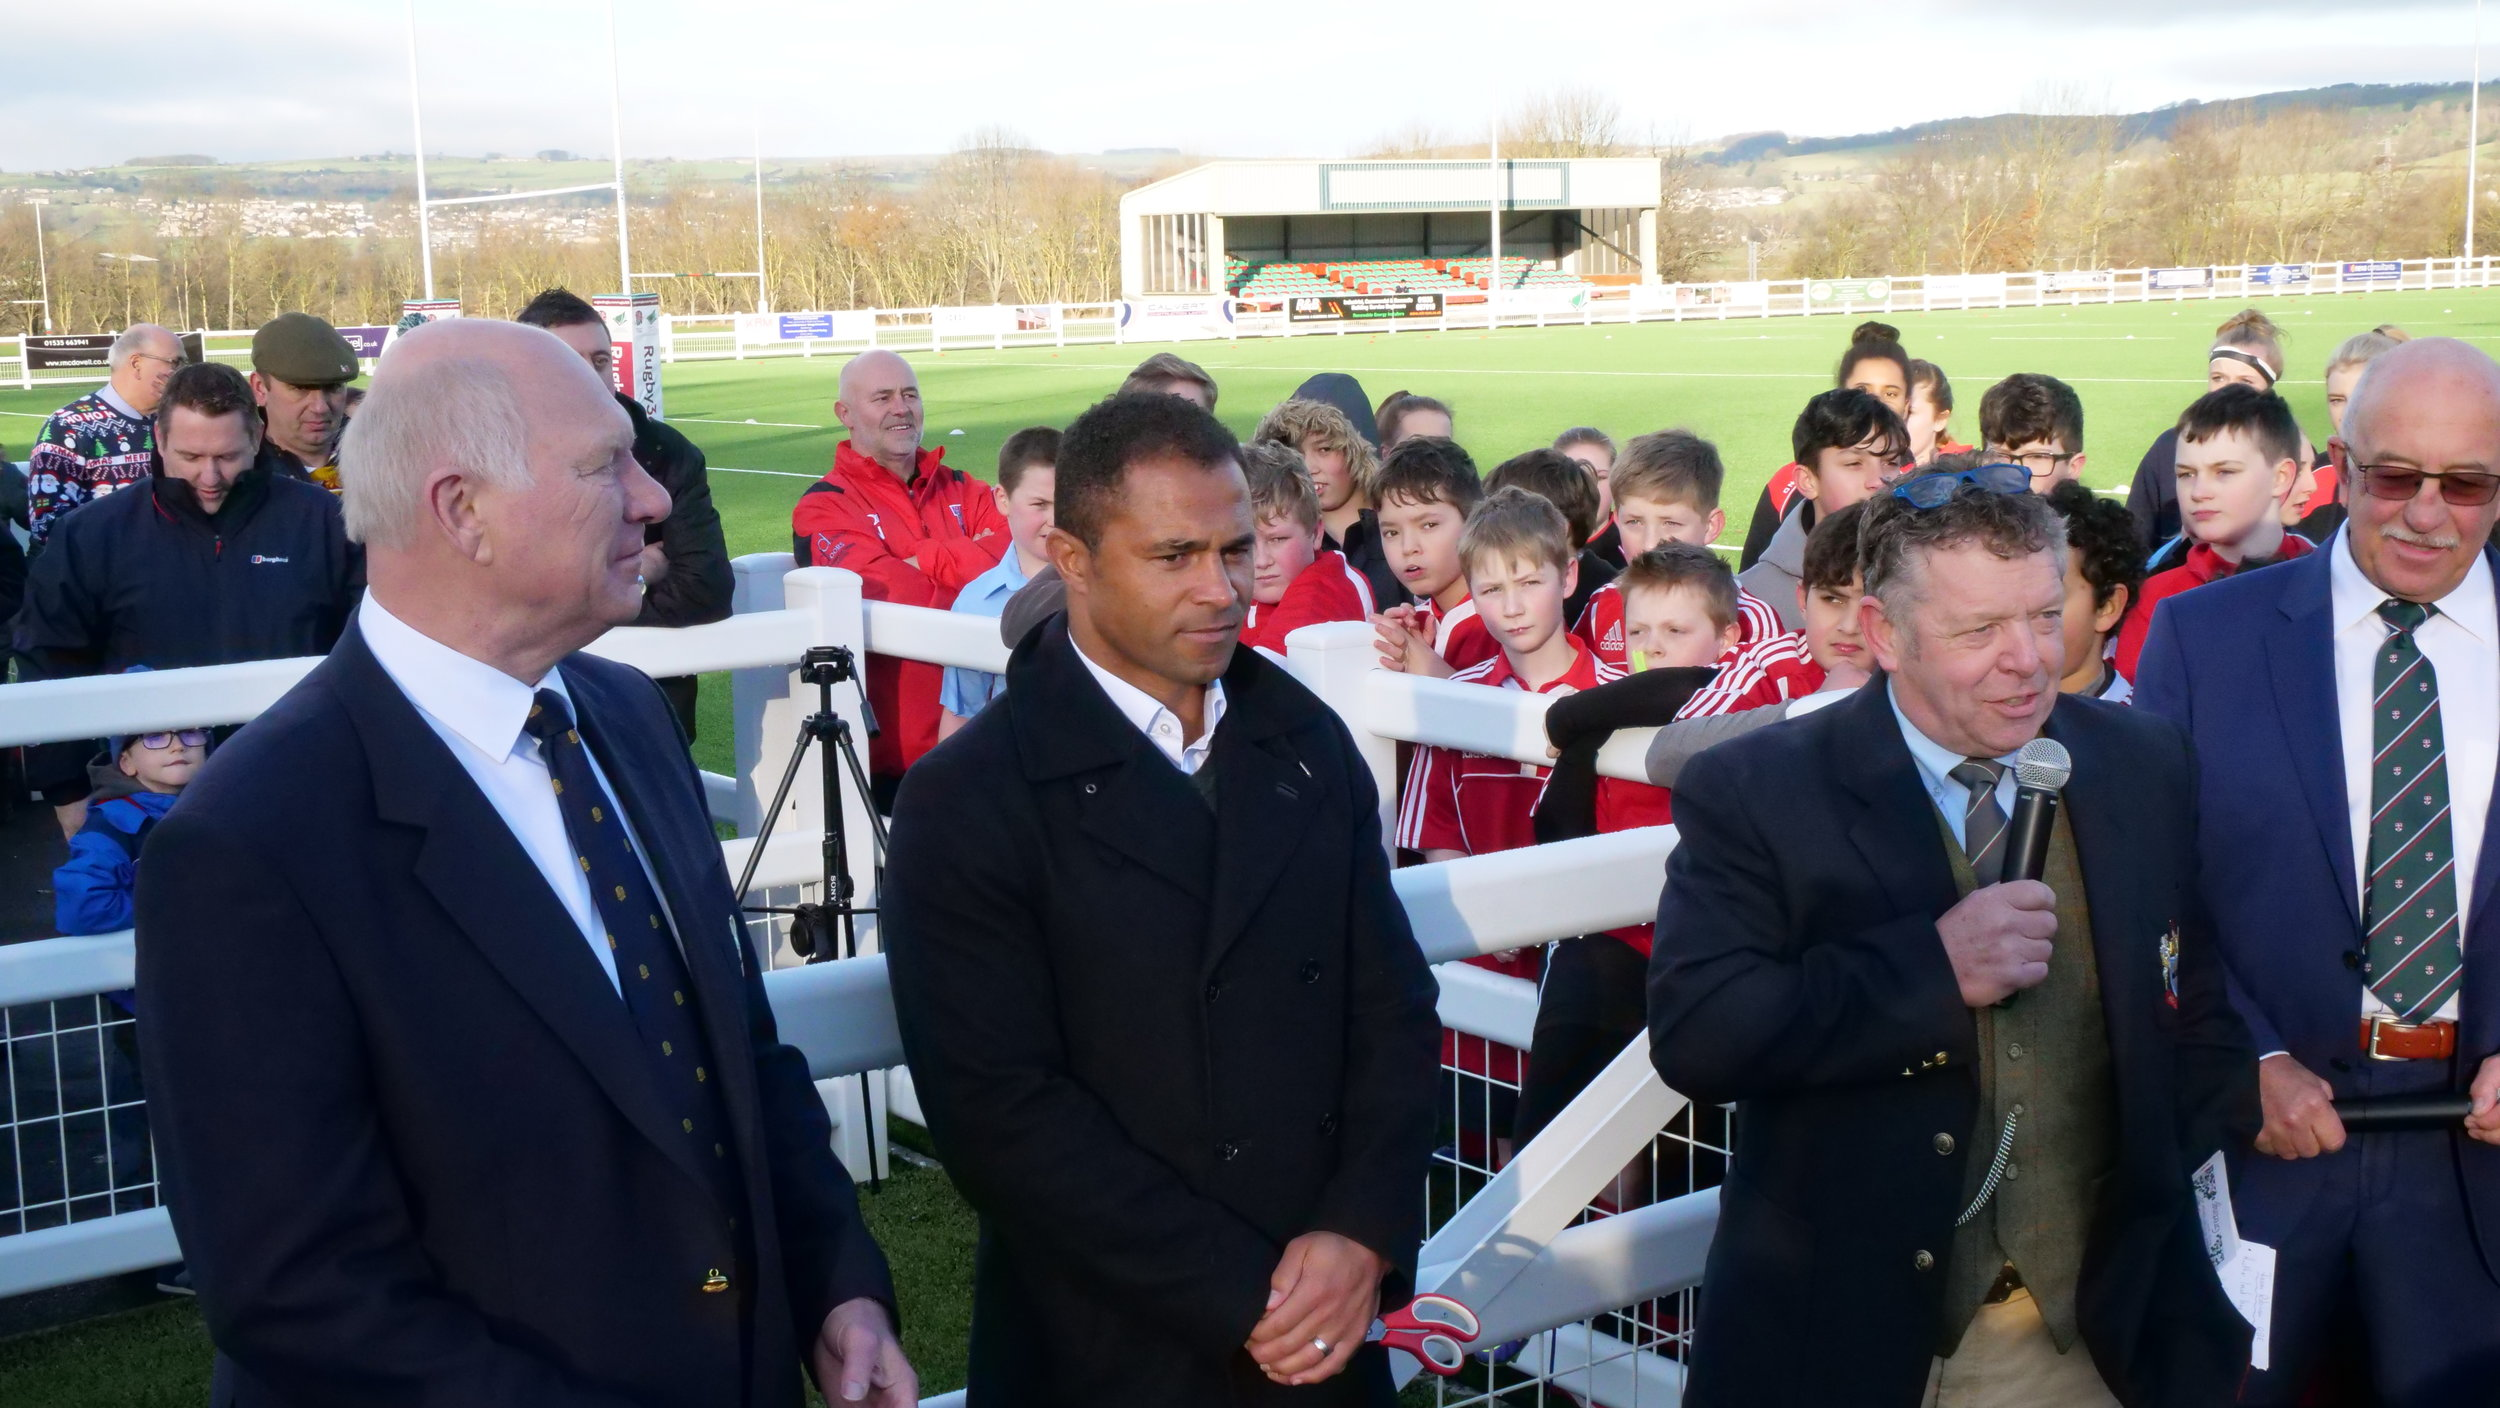 Earlier this year The RFU opened yet another all-weather rugby pitch at Keighley RUFC, one of their many strategies to grow the sport